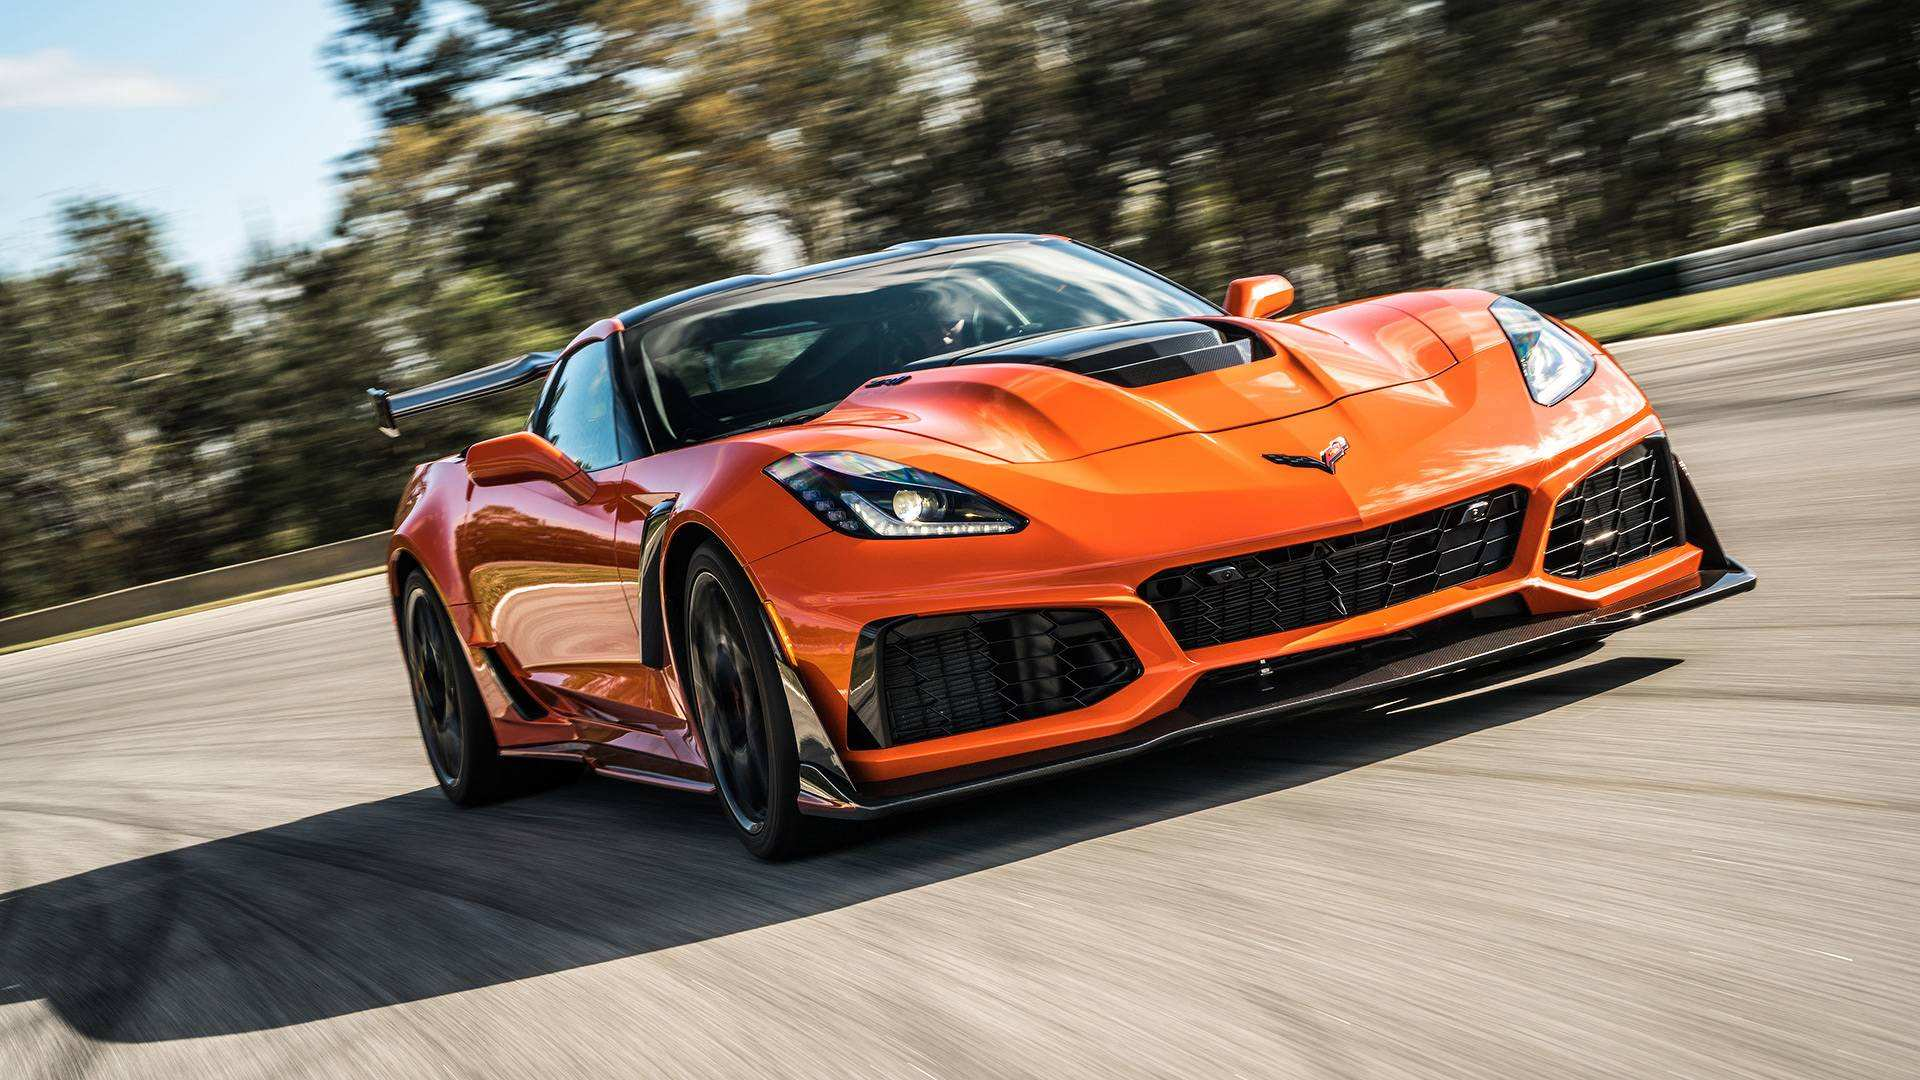 58 All New 2019 Chevrolet Corvette Zr1 Overview